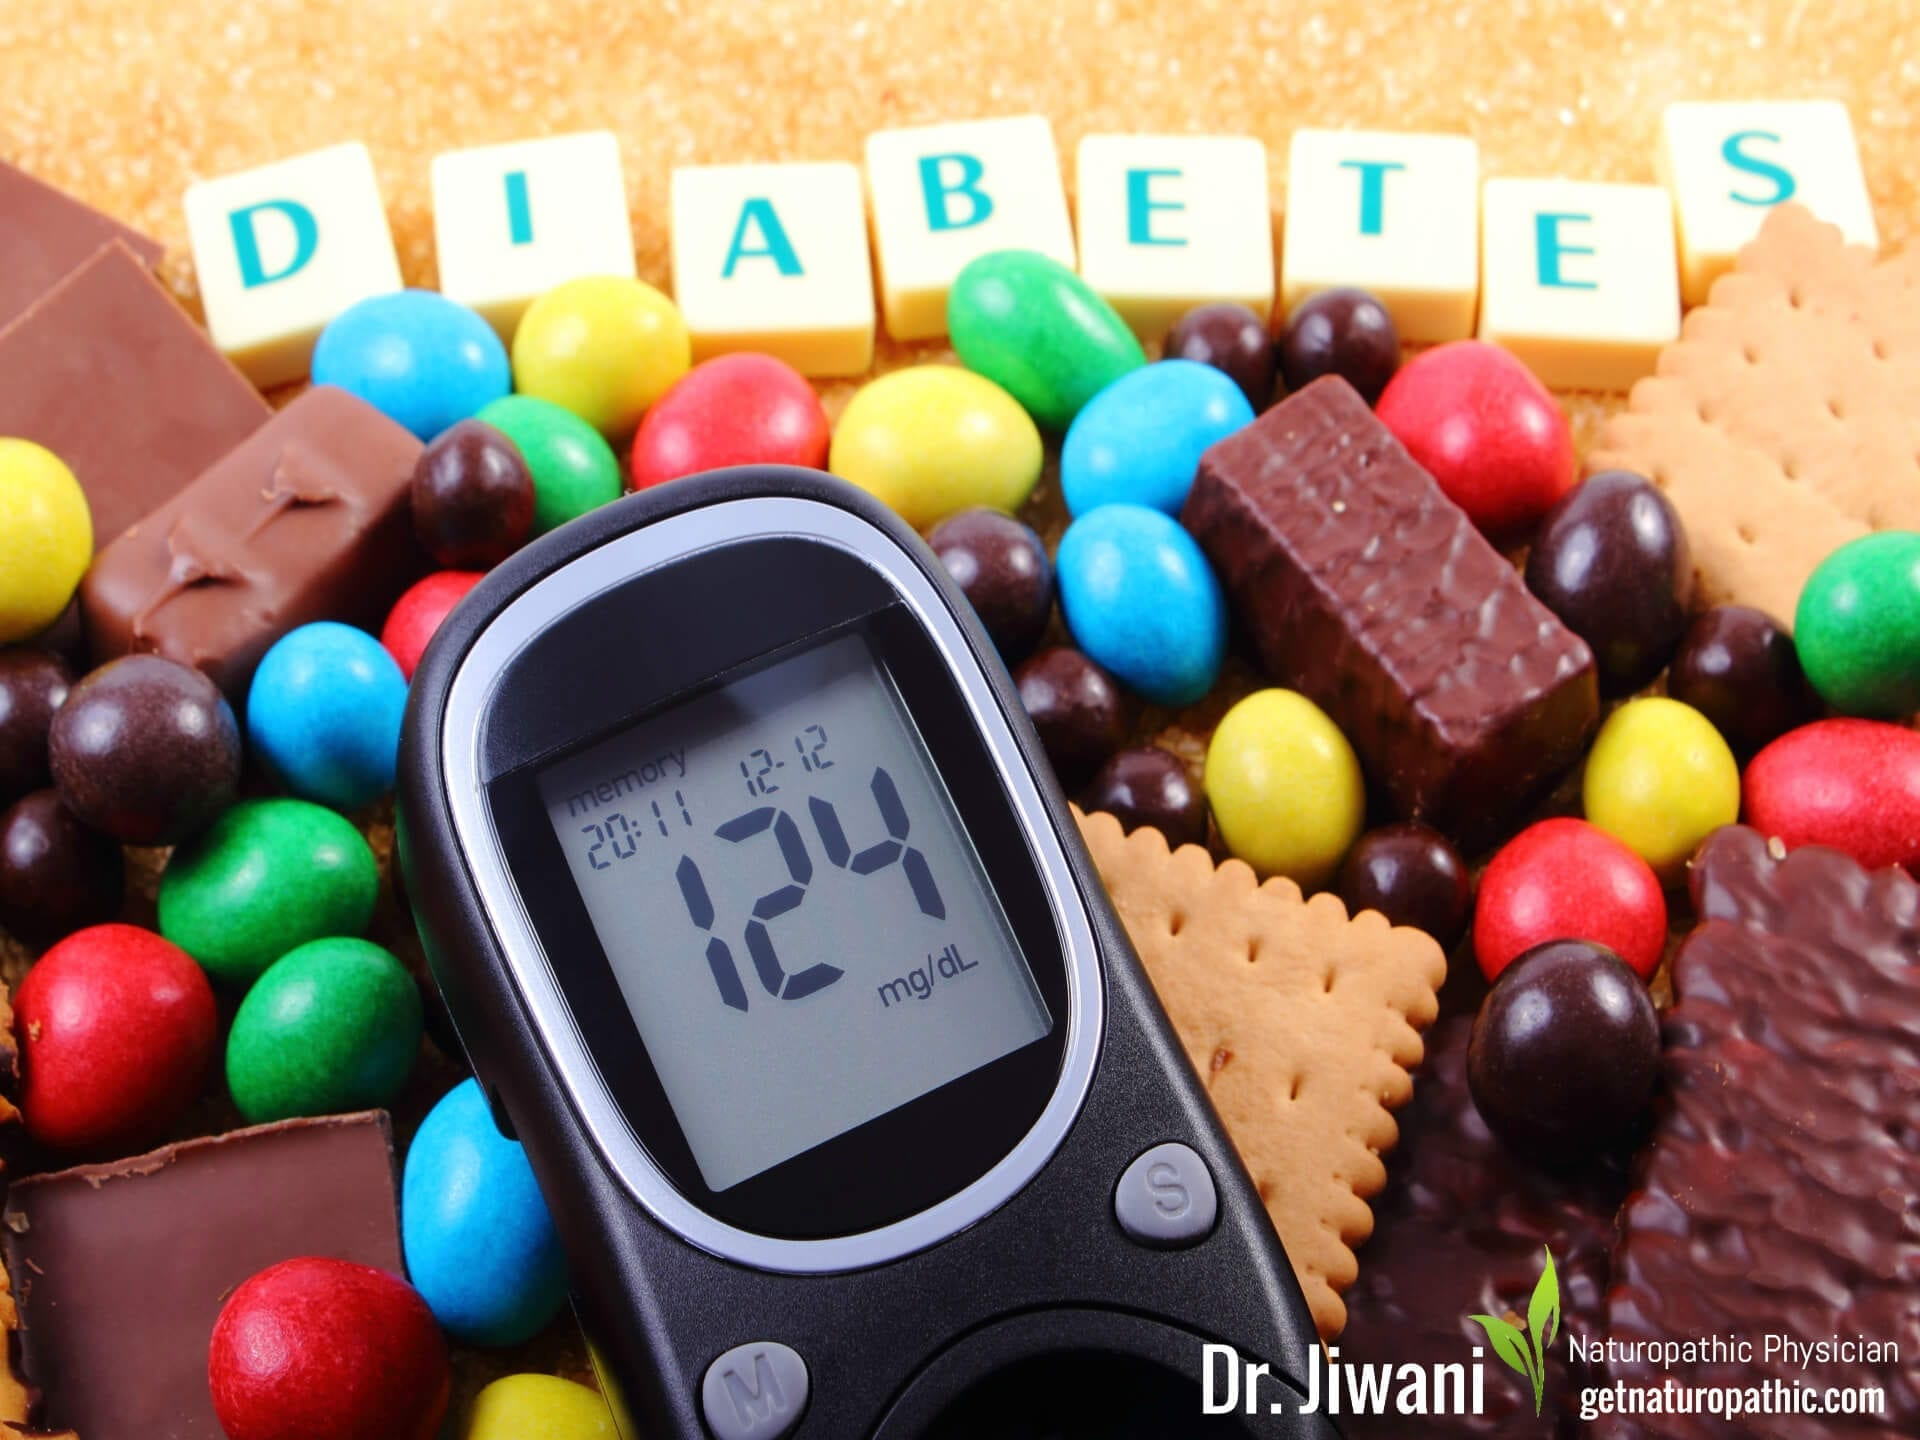 Diabetes Sugar the Sweet Poison: The Alarming Ways Sugar Damages Your Body & Brain* | Dr. Jiwani's Naturopathic Nuggets Blog